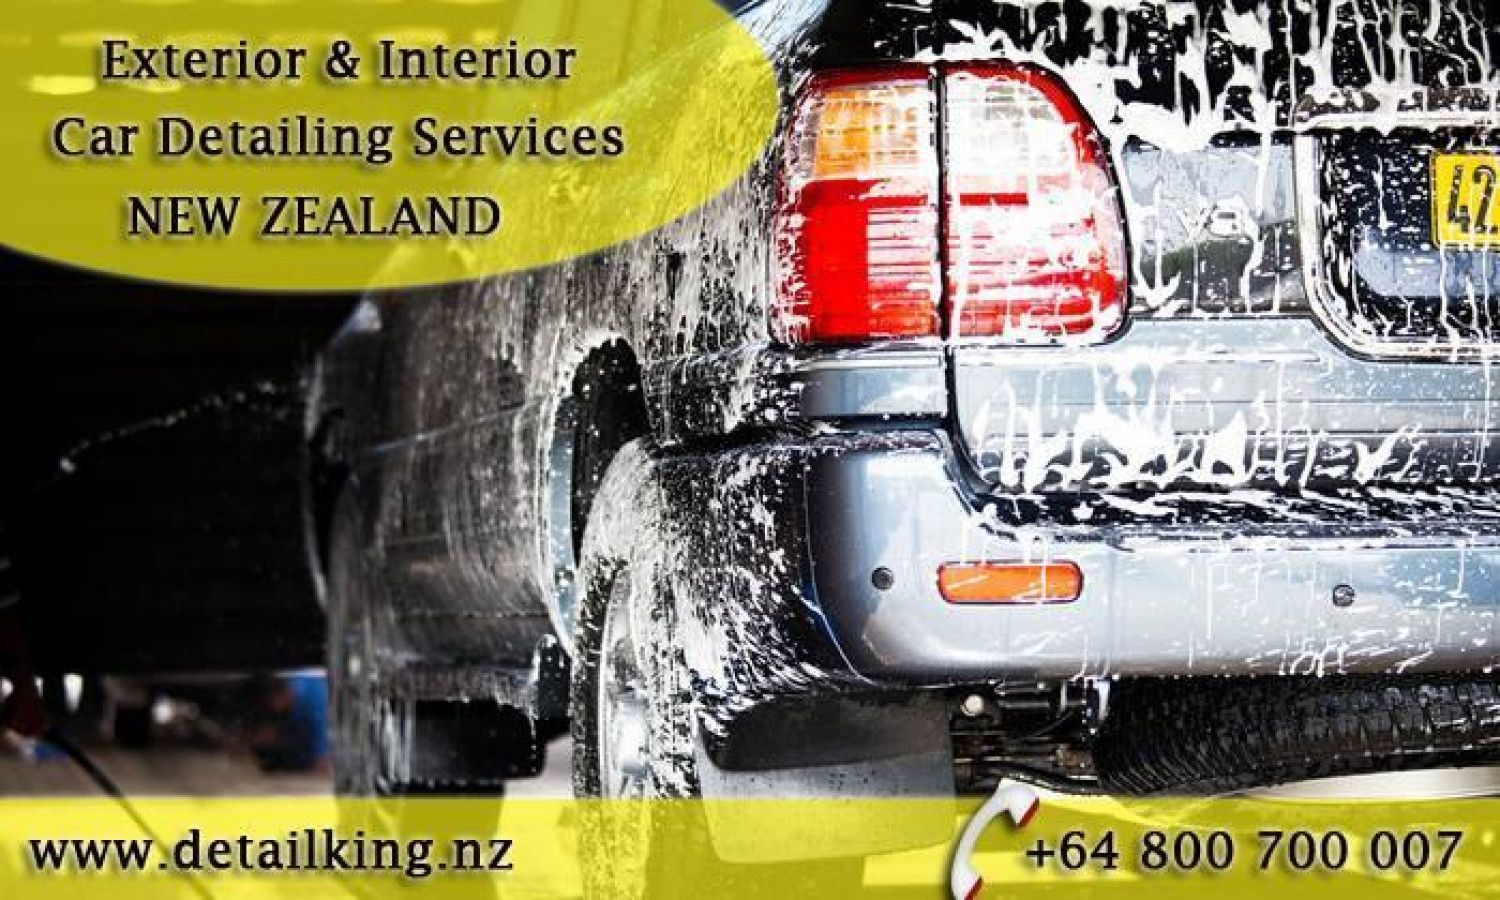 Exterior & Interior CarDetailing & Cleaning Services